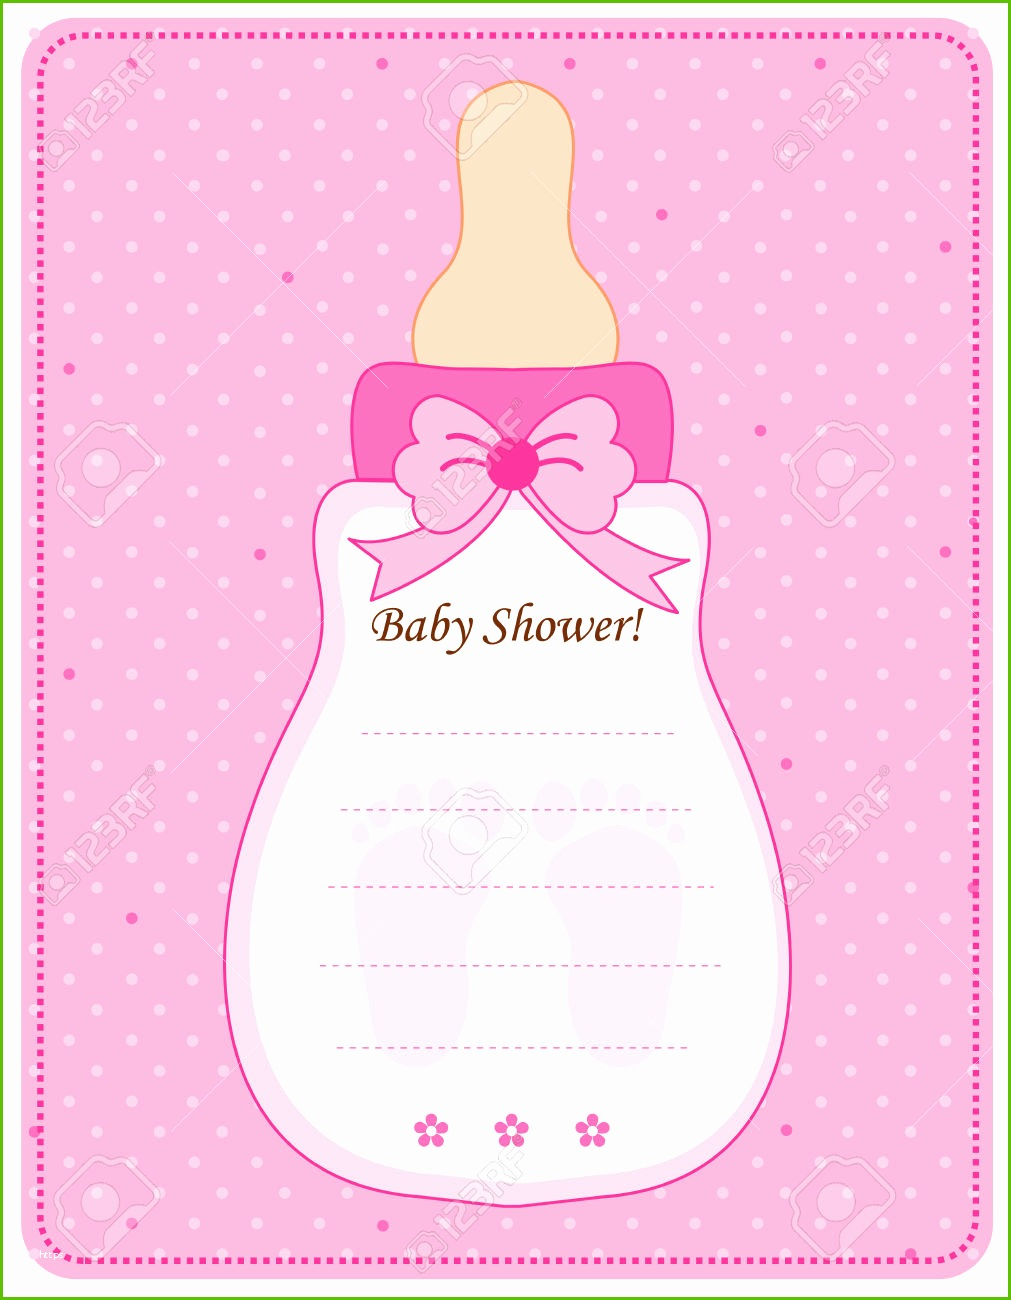 Full Size of Baby Shower:sturdy Baby Shower Invitation Template Image Concepts Baby Shower Templates Free Printable Amazing Baby Shower Invitation Baby Shower Templates Free Printable Admirable Baby Shower Invitation For Girls Template Invitation